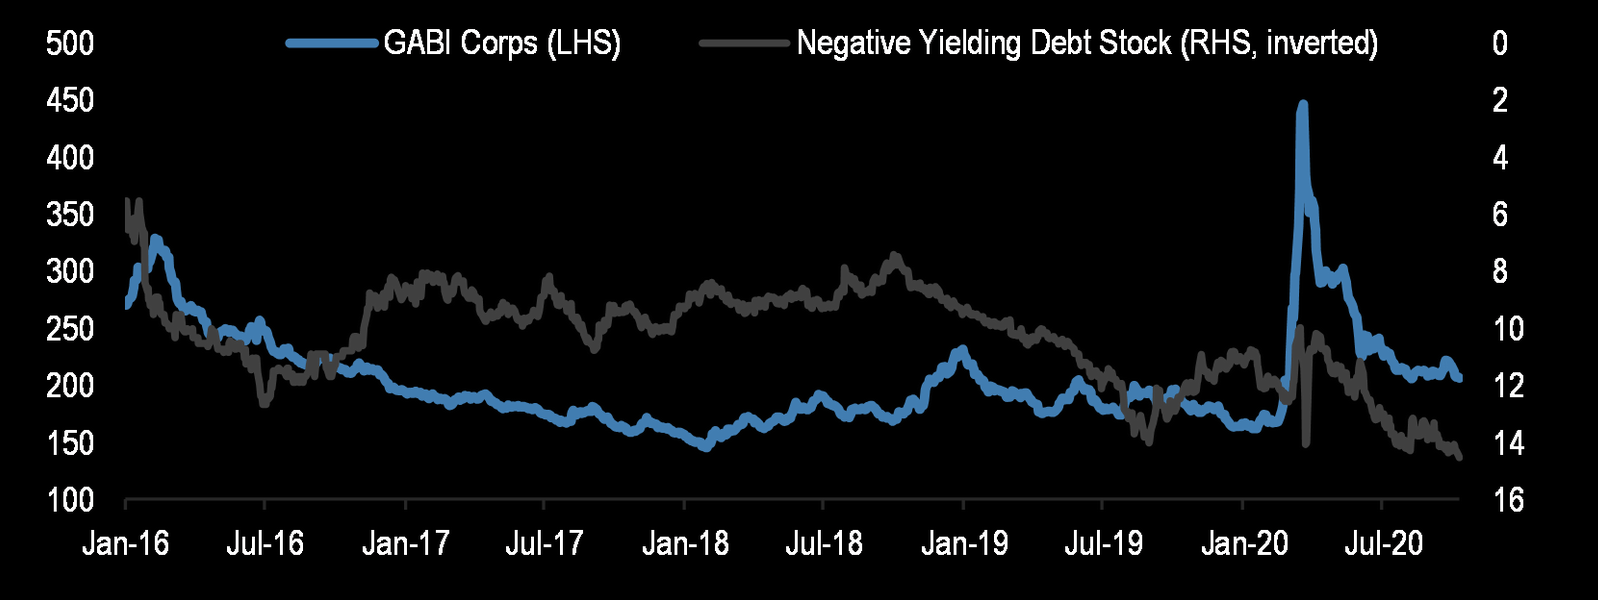 Global Credit Spreads and the Negative-Yielding Government Debt Stock